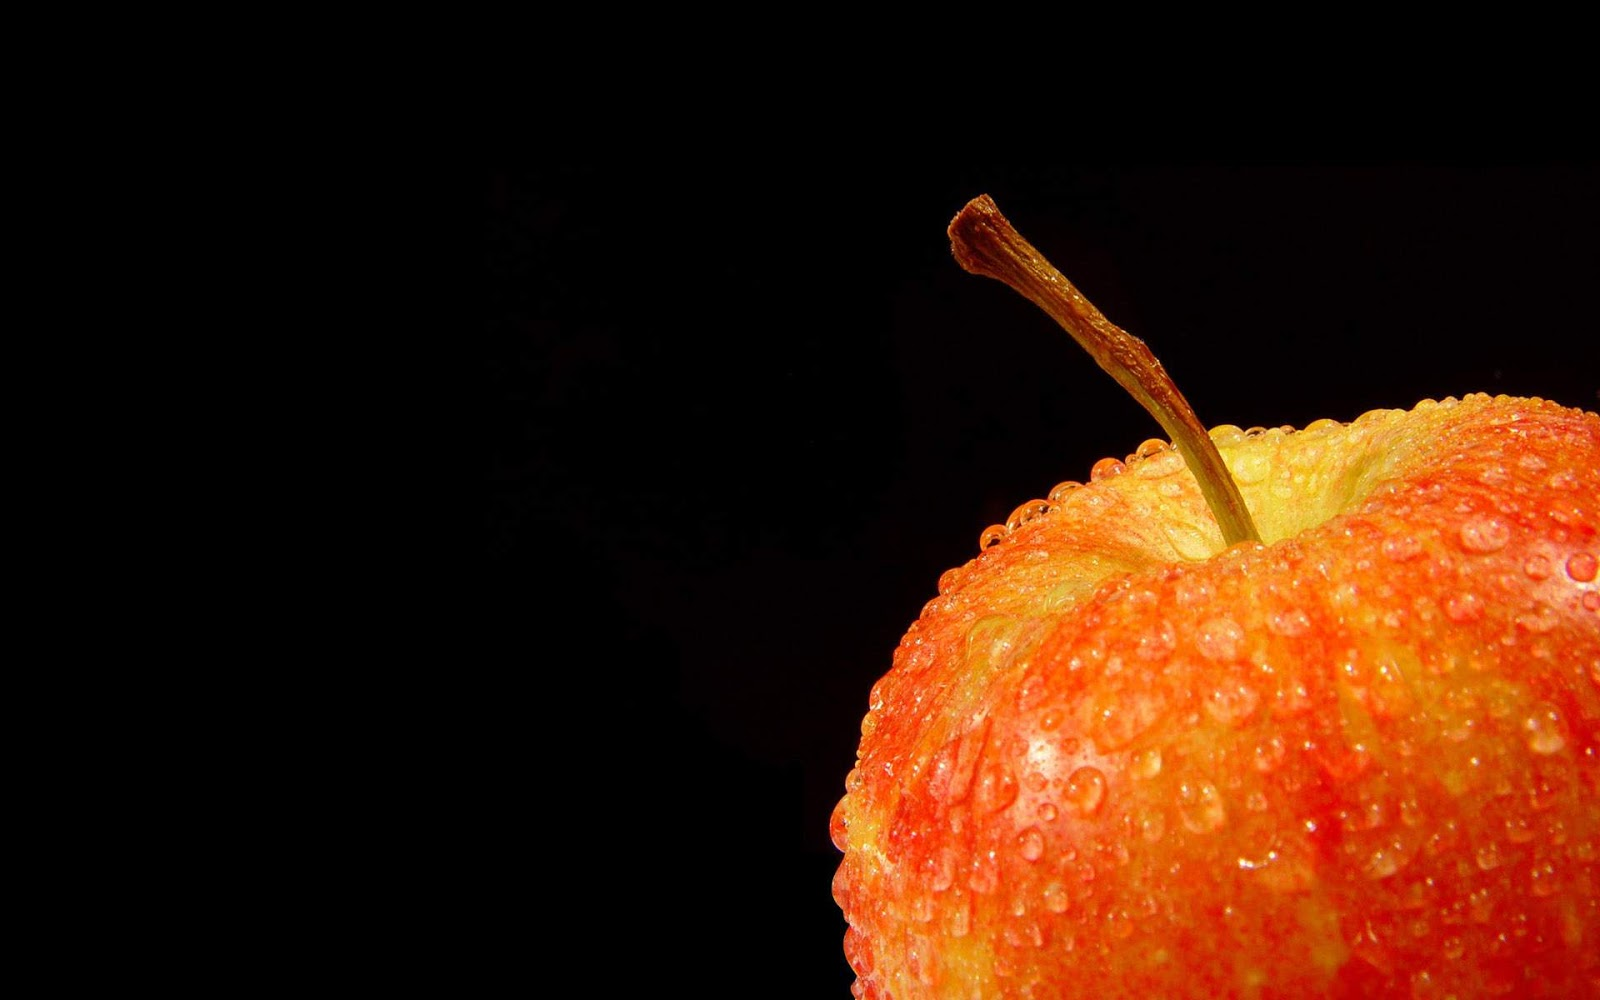 Wallpapers Orange Apple on Black Background Black Orange Wallpaper 1600x1000